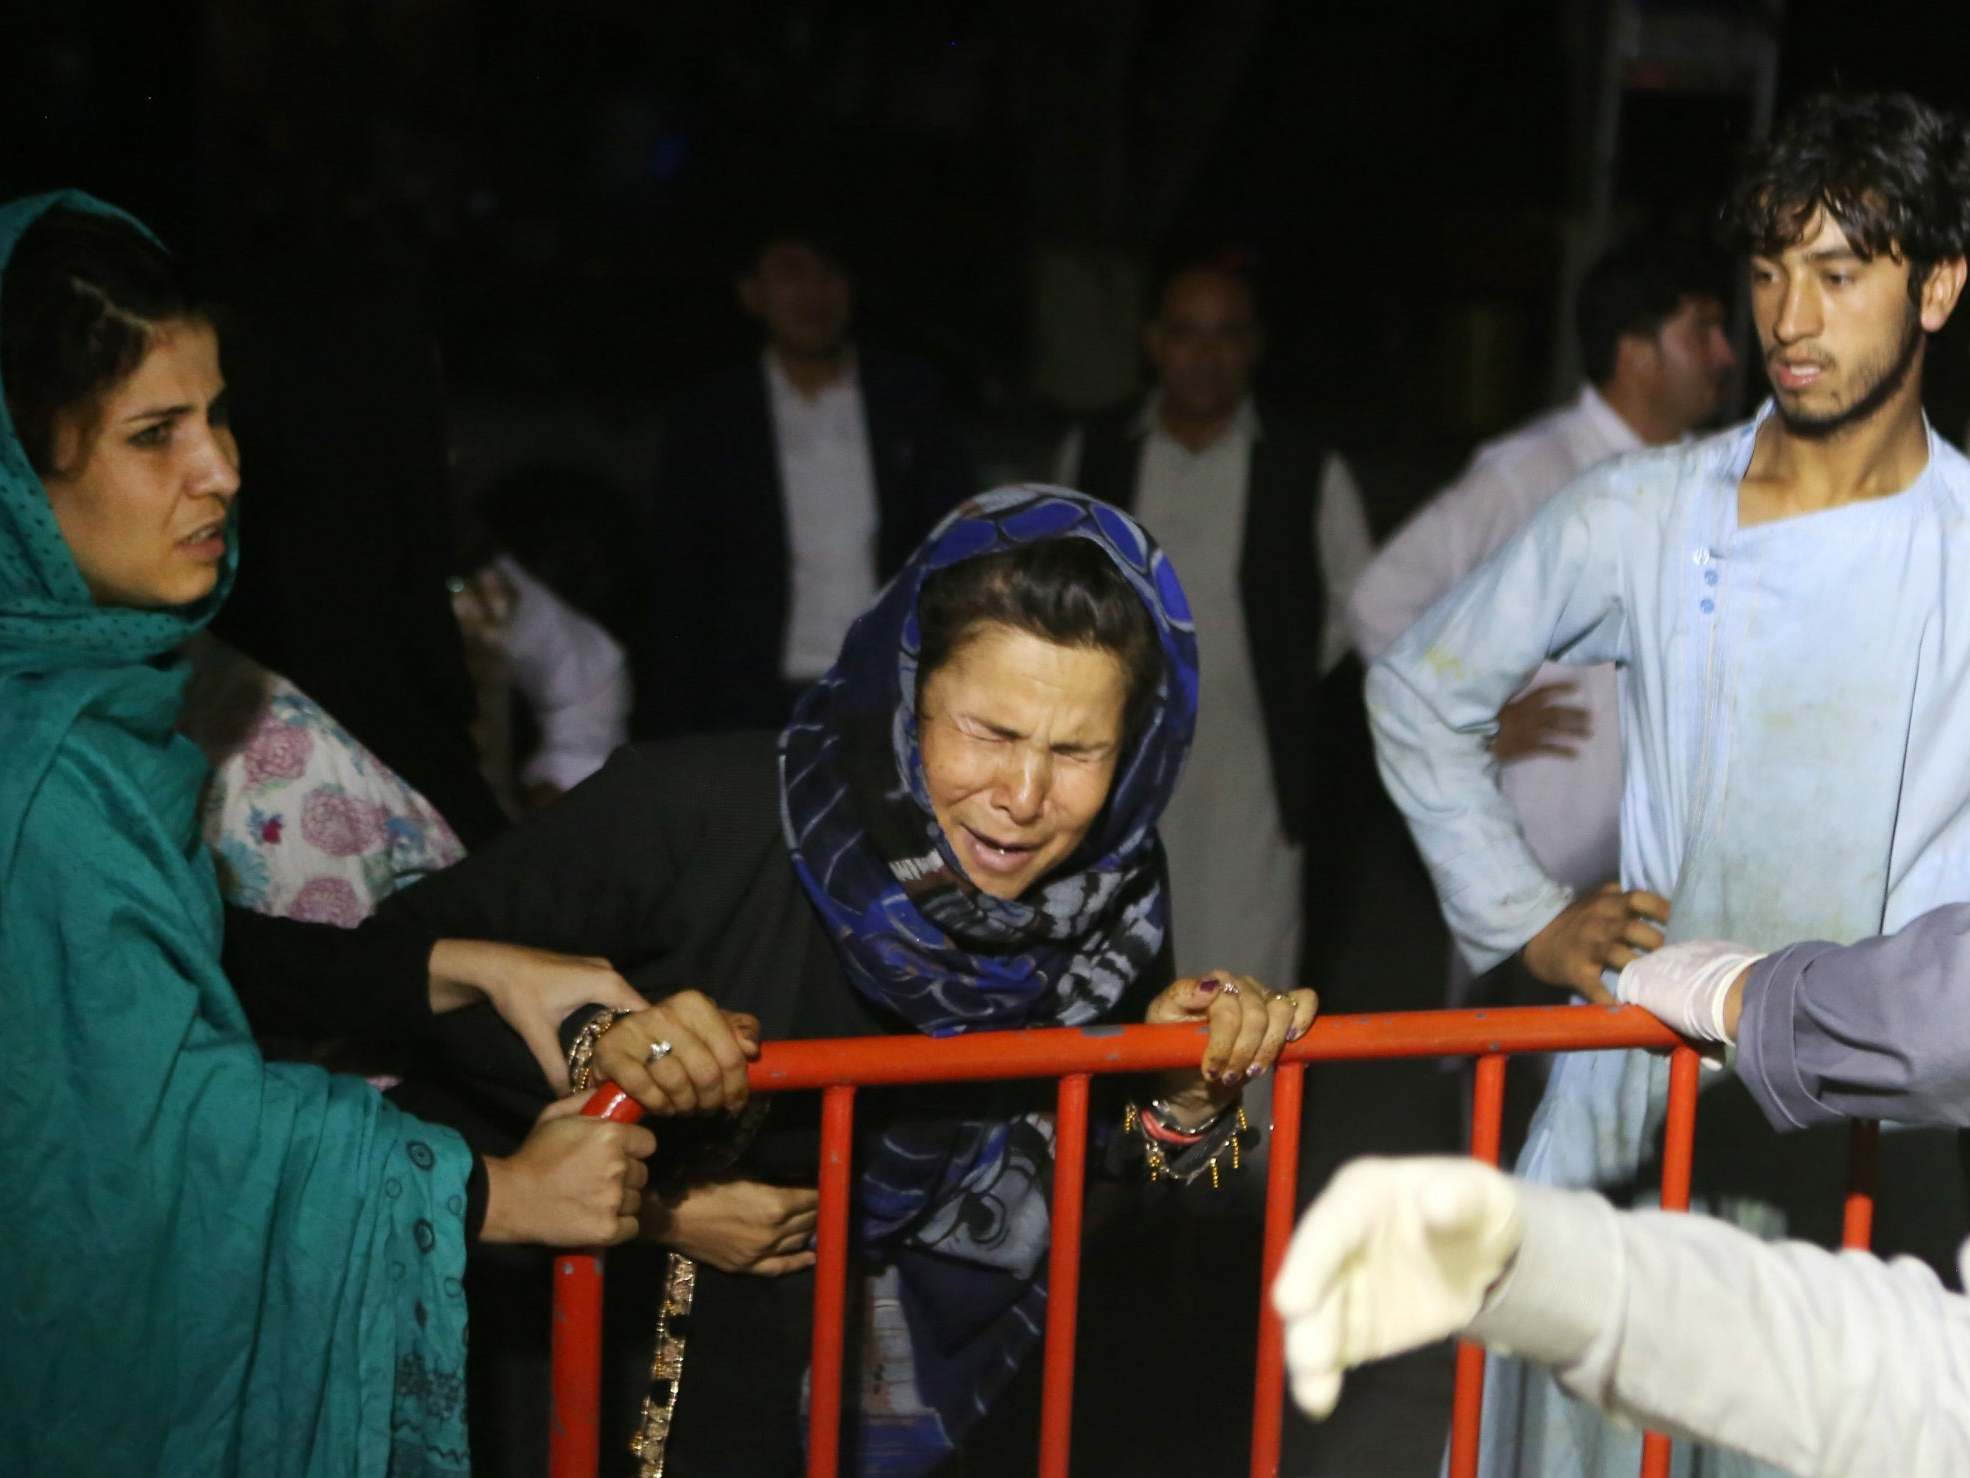 Kabul wedding attack: Dozens feared dead after suicide bombing in Afghanistan